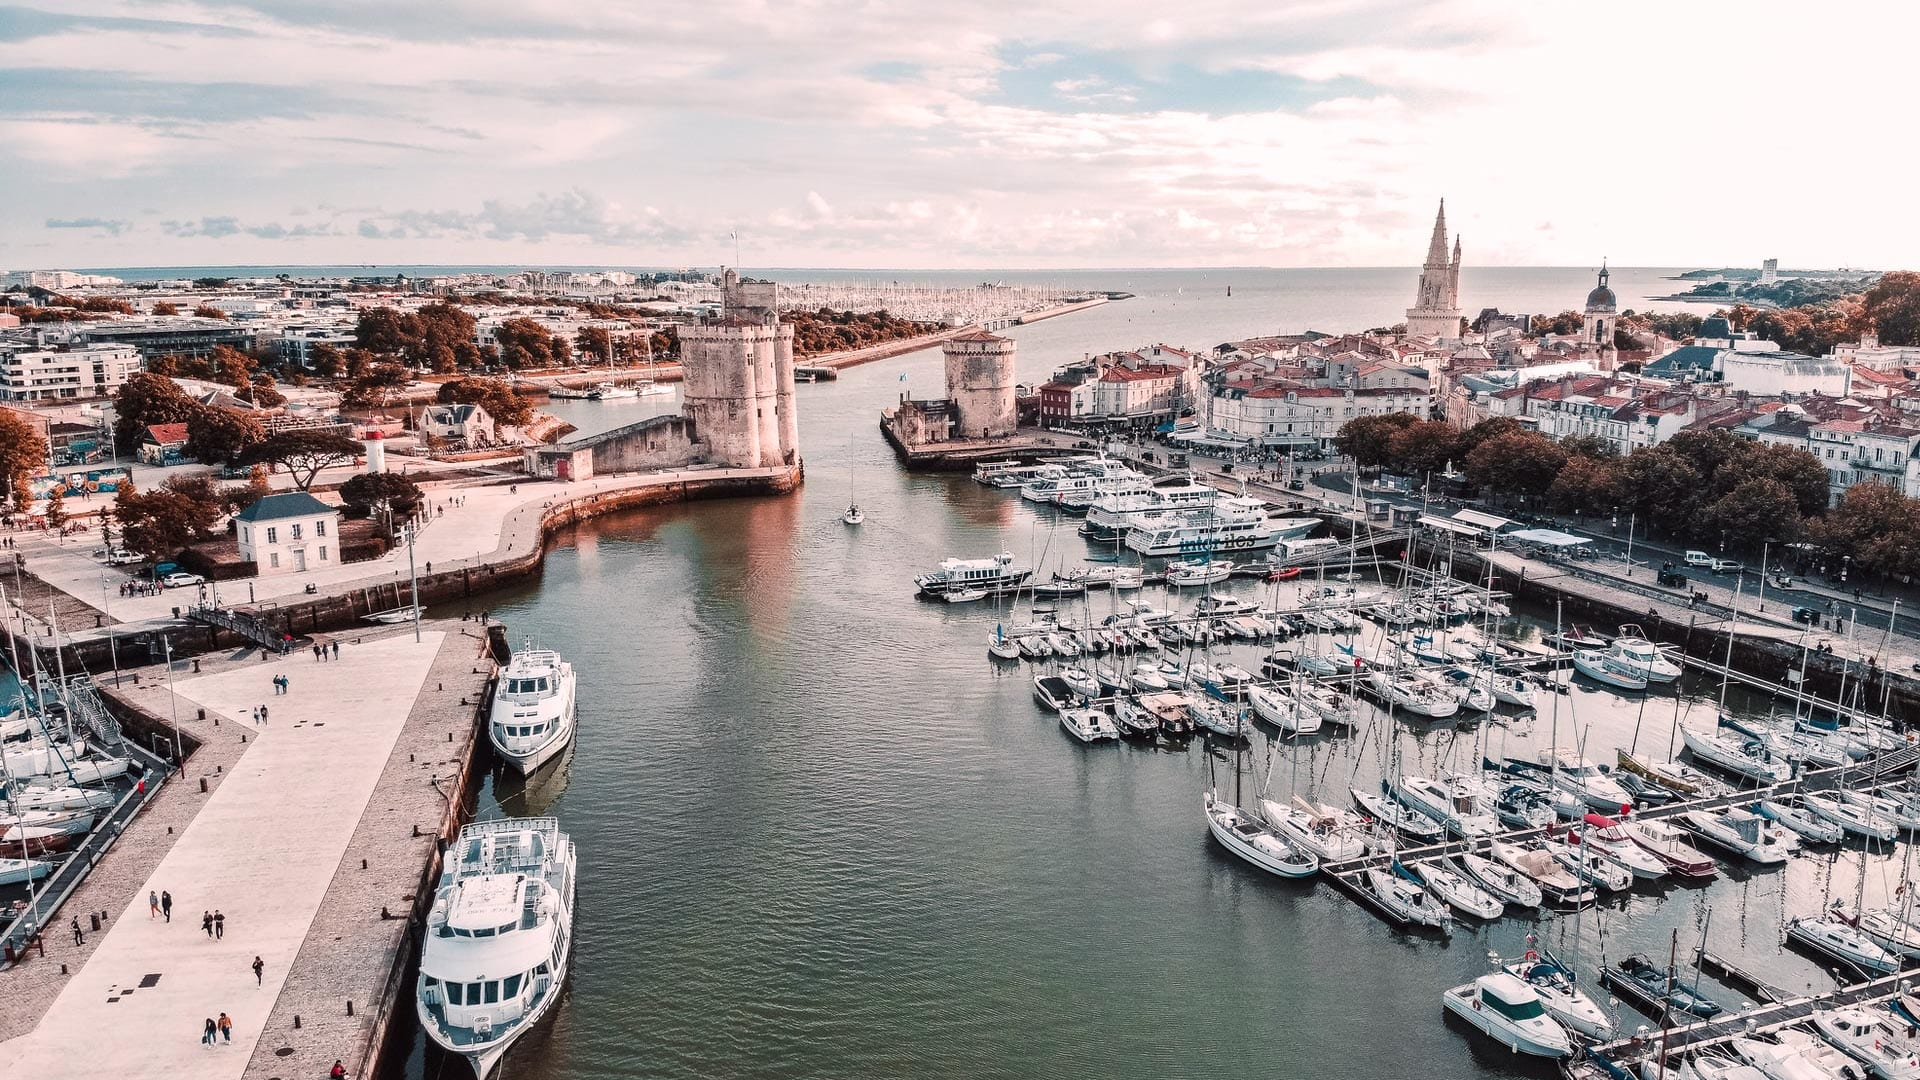 Private days from 9 to 12 December in La Rochelle